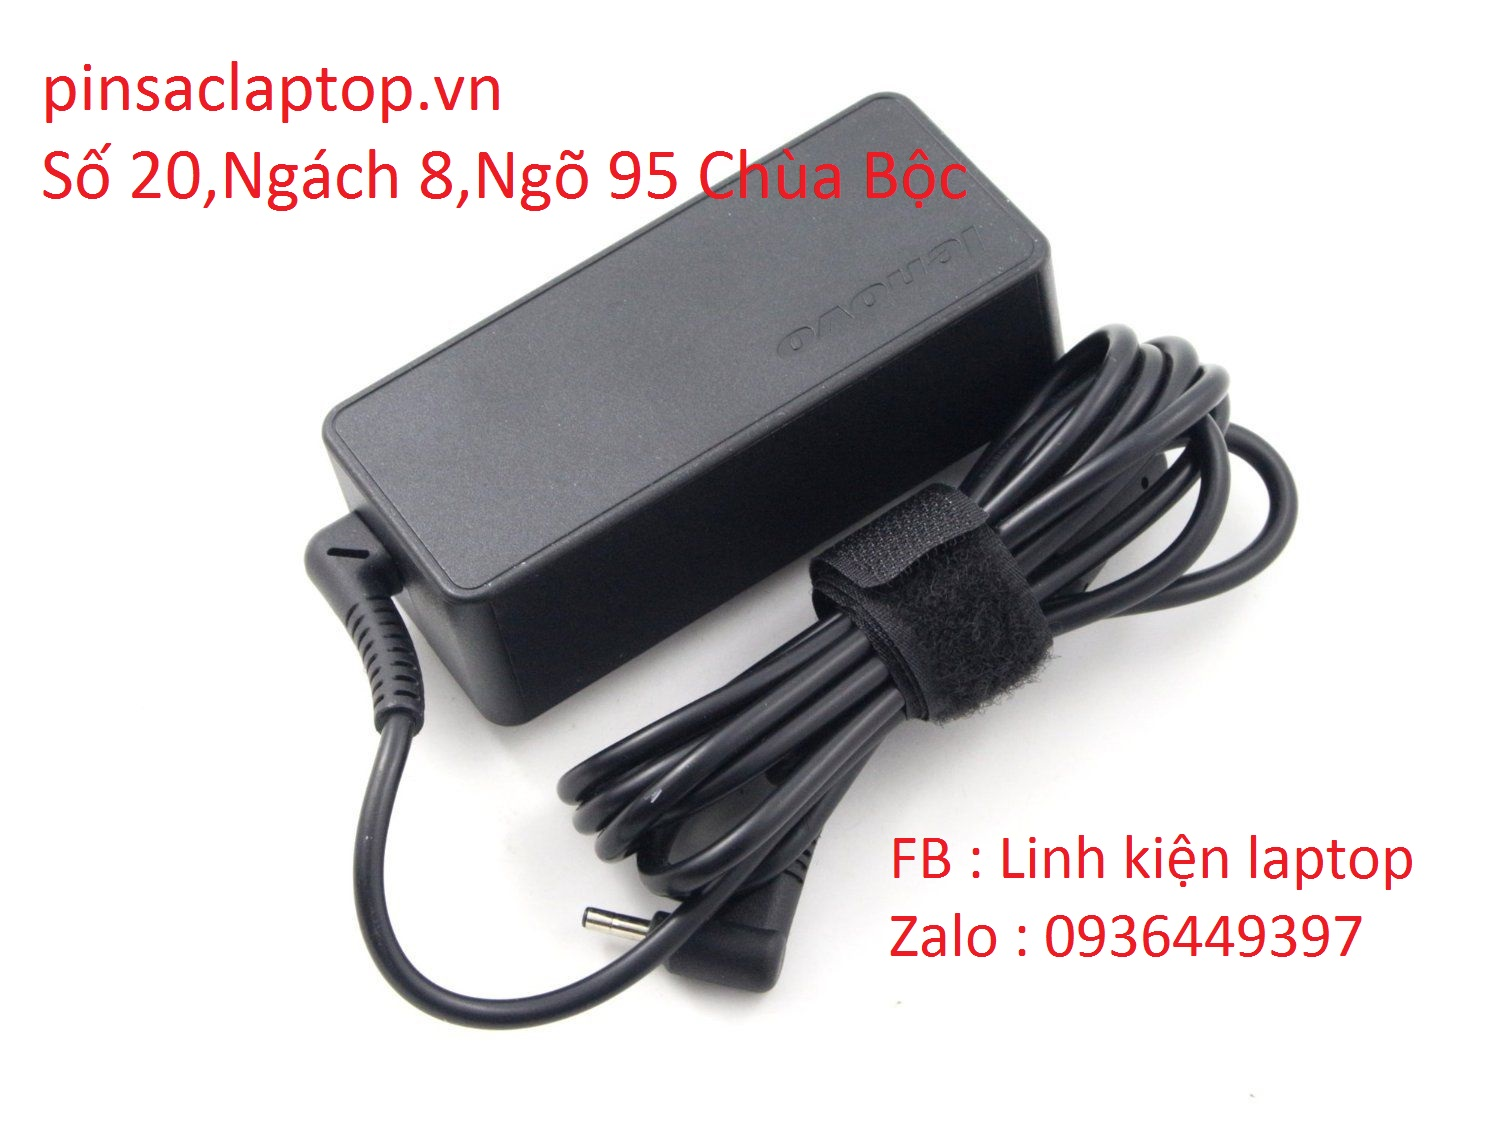 Sạc Adapter Laptop Lenovo IdeaPad 310-15ABR